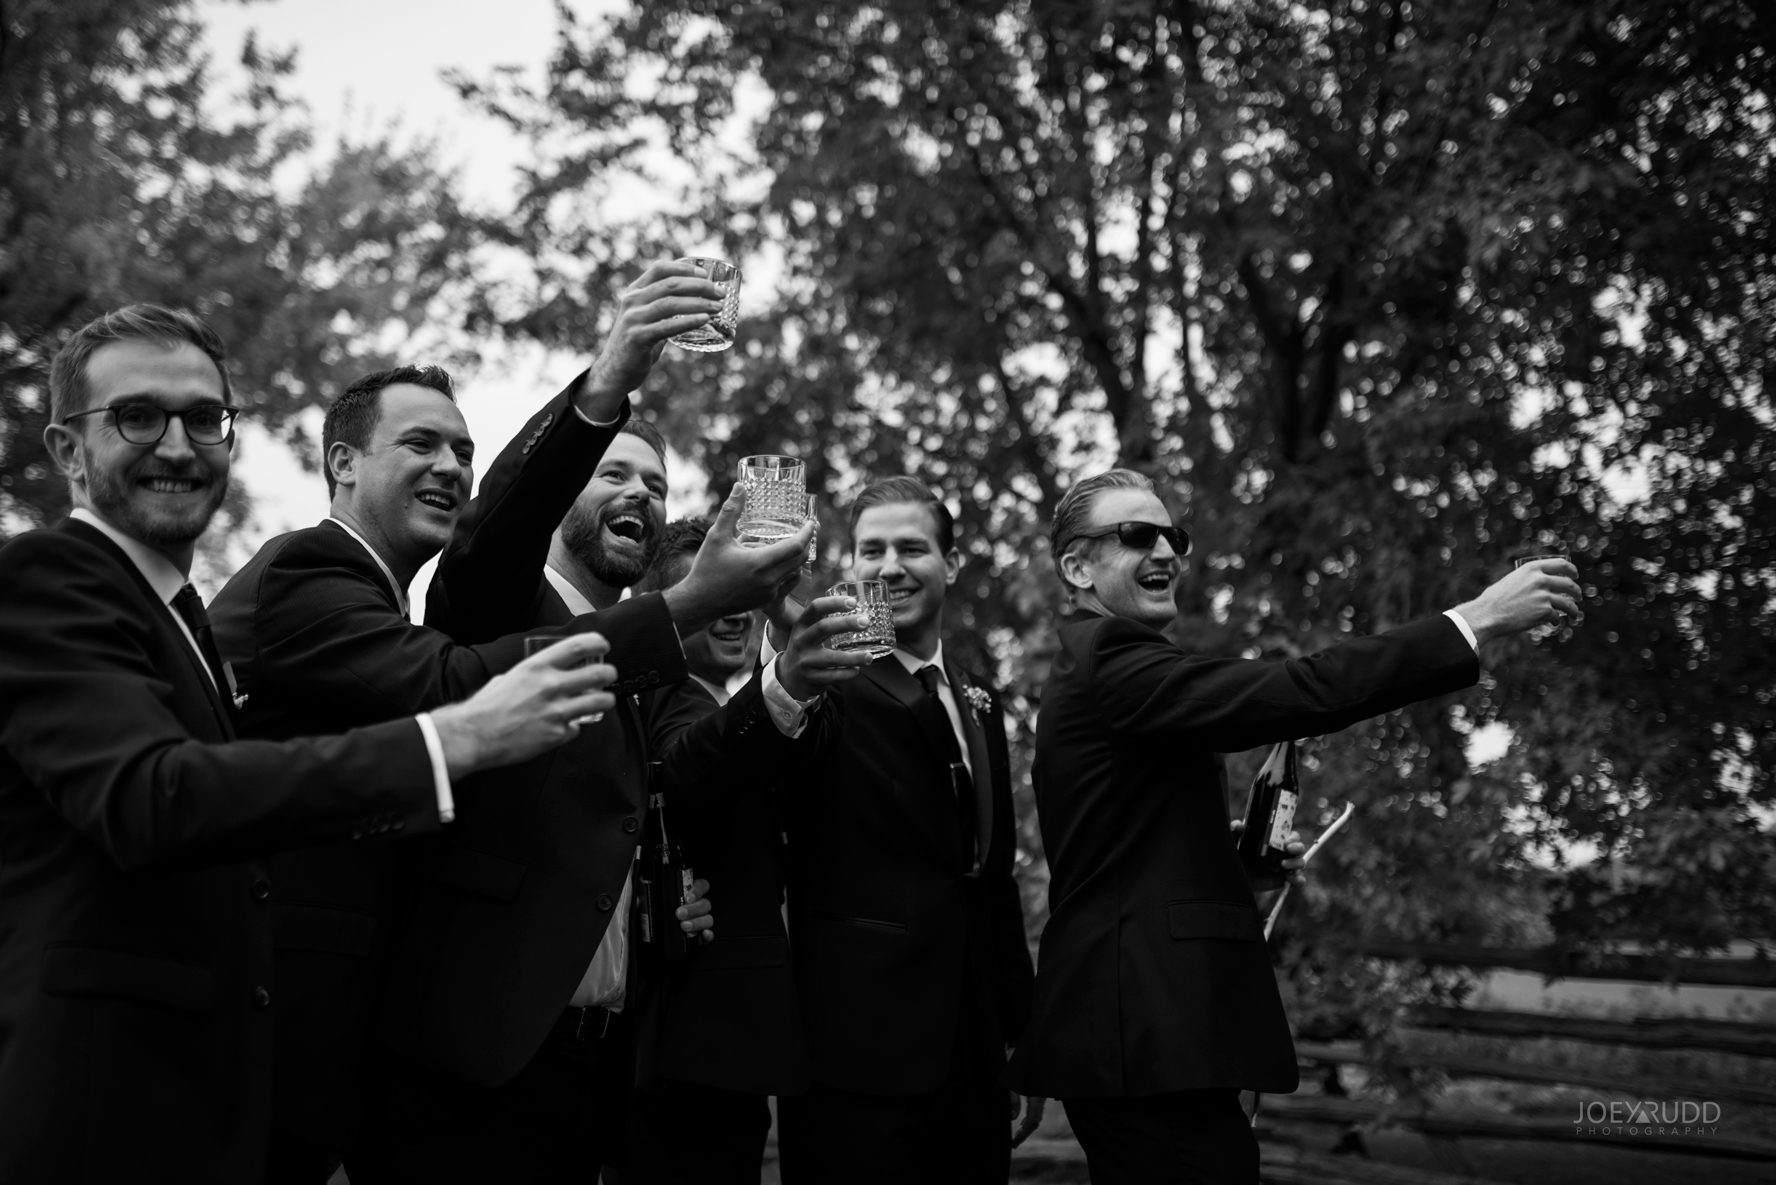 Evermore Wedding, Evermore Wedding and Events, Ottawa Wedding, Almonte Wedding, Ottawa Photographer, Wedding Photography, Wedding Photographer, Joey Rudd Photography, Farm Wedding, Rustic Wedding, Barn Wedding Venue, Wedding Venue, Ottawa Wedding Venue, Almonte Riverside Inn, Candid, groomsmen and drinks